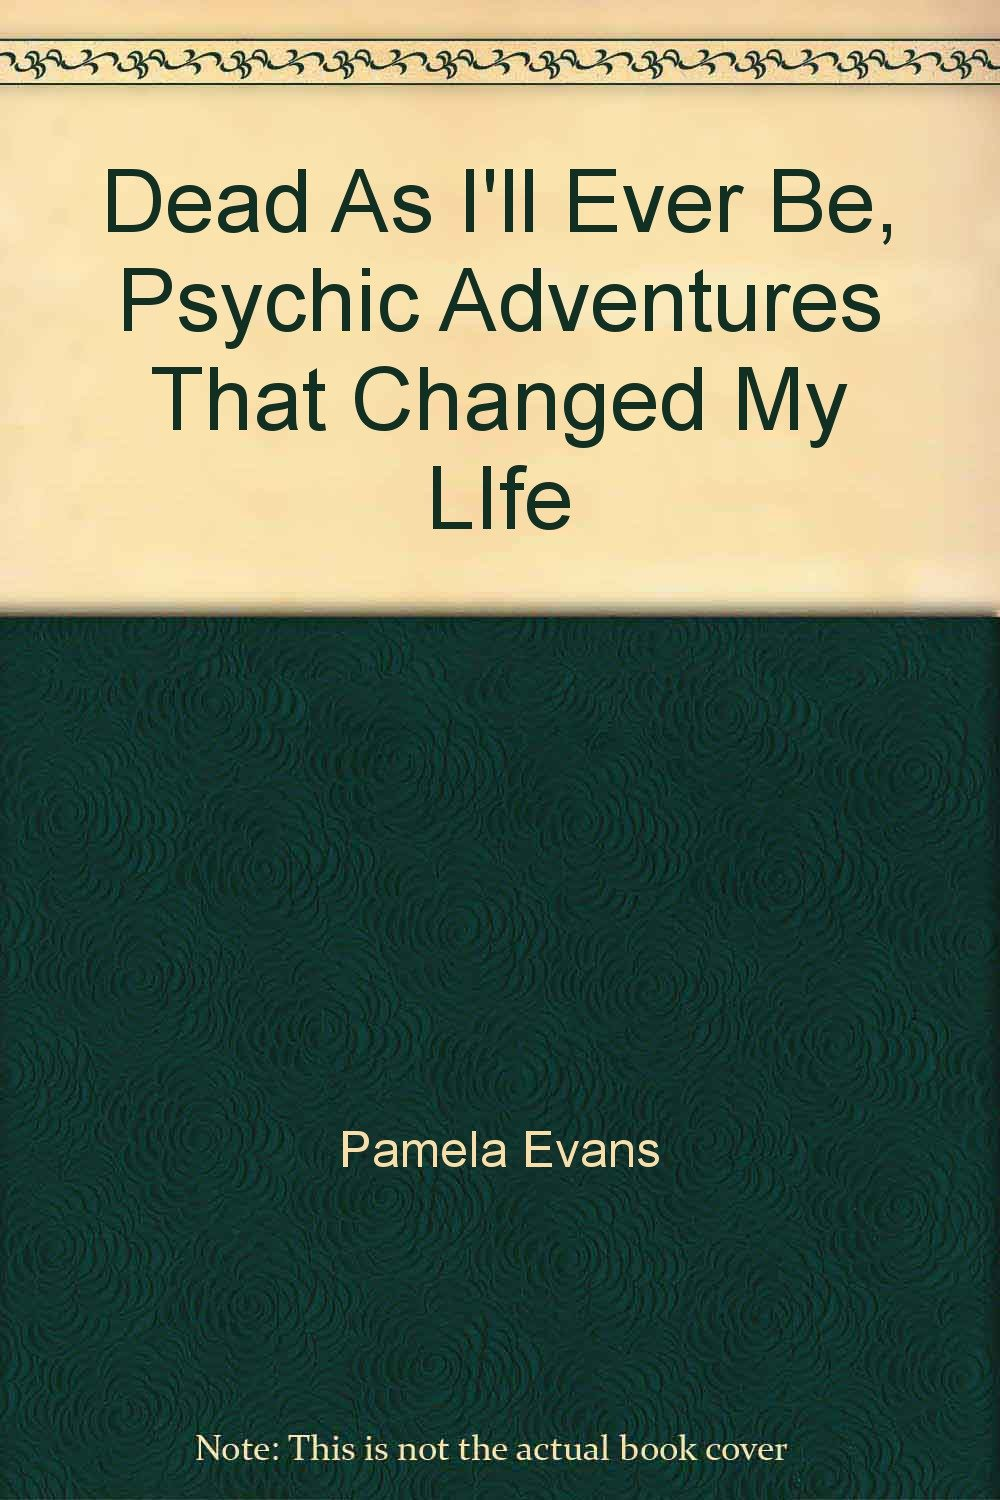 Dead As Ill Ever Be: Psychic Adventures That Changed My LIfe